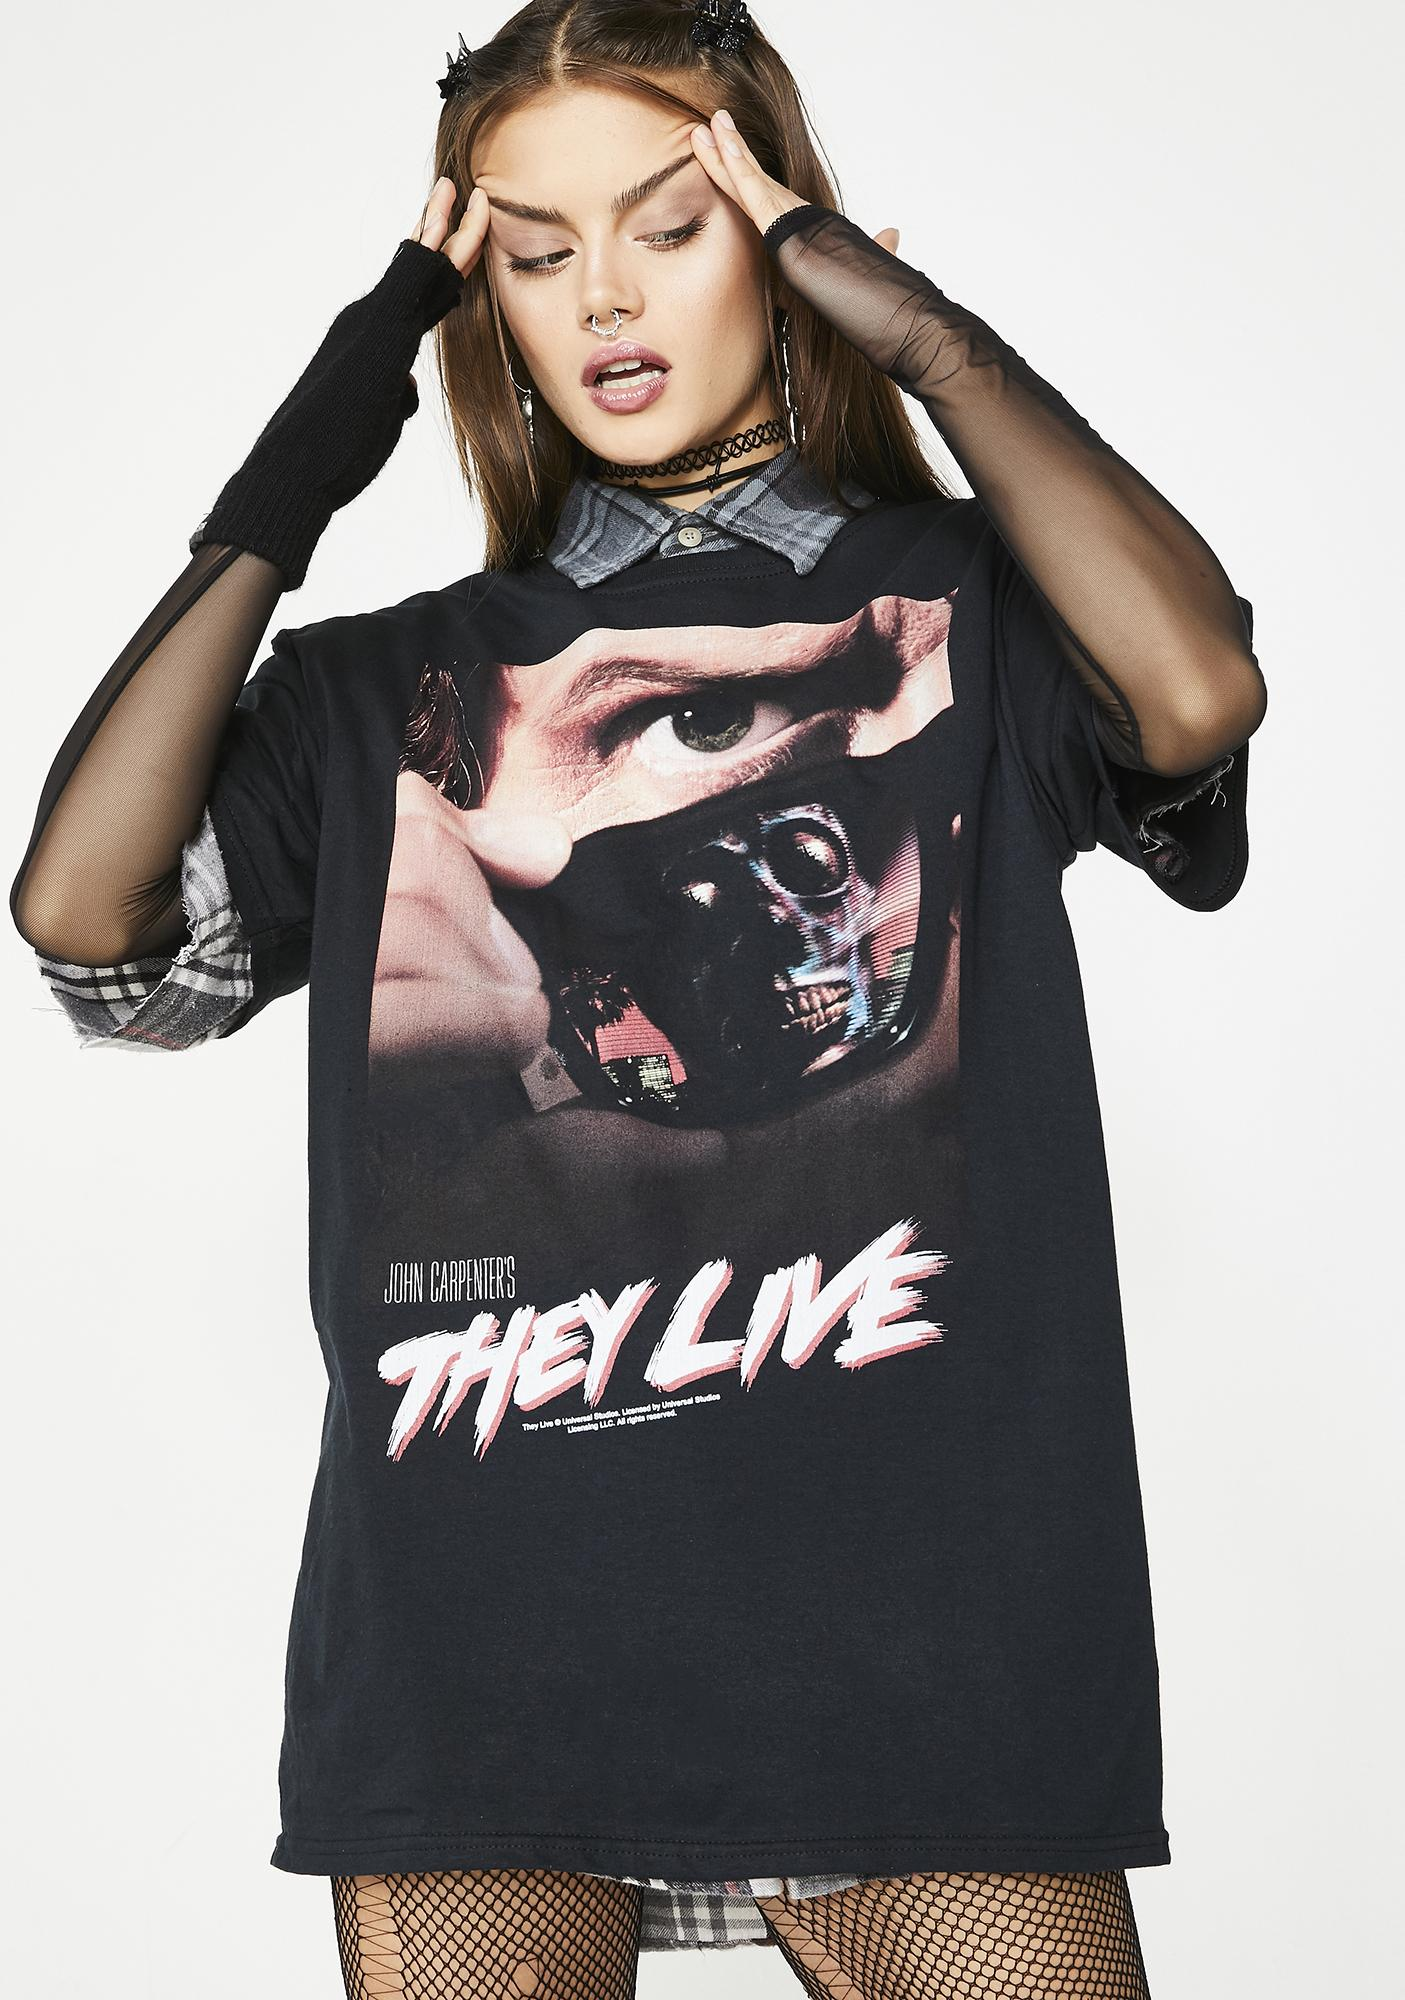 Subliminal Messages Short Sleeve Tee